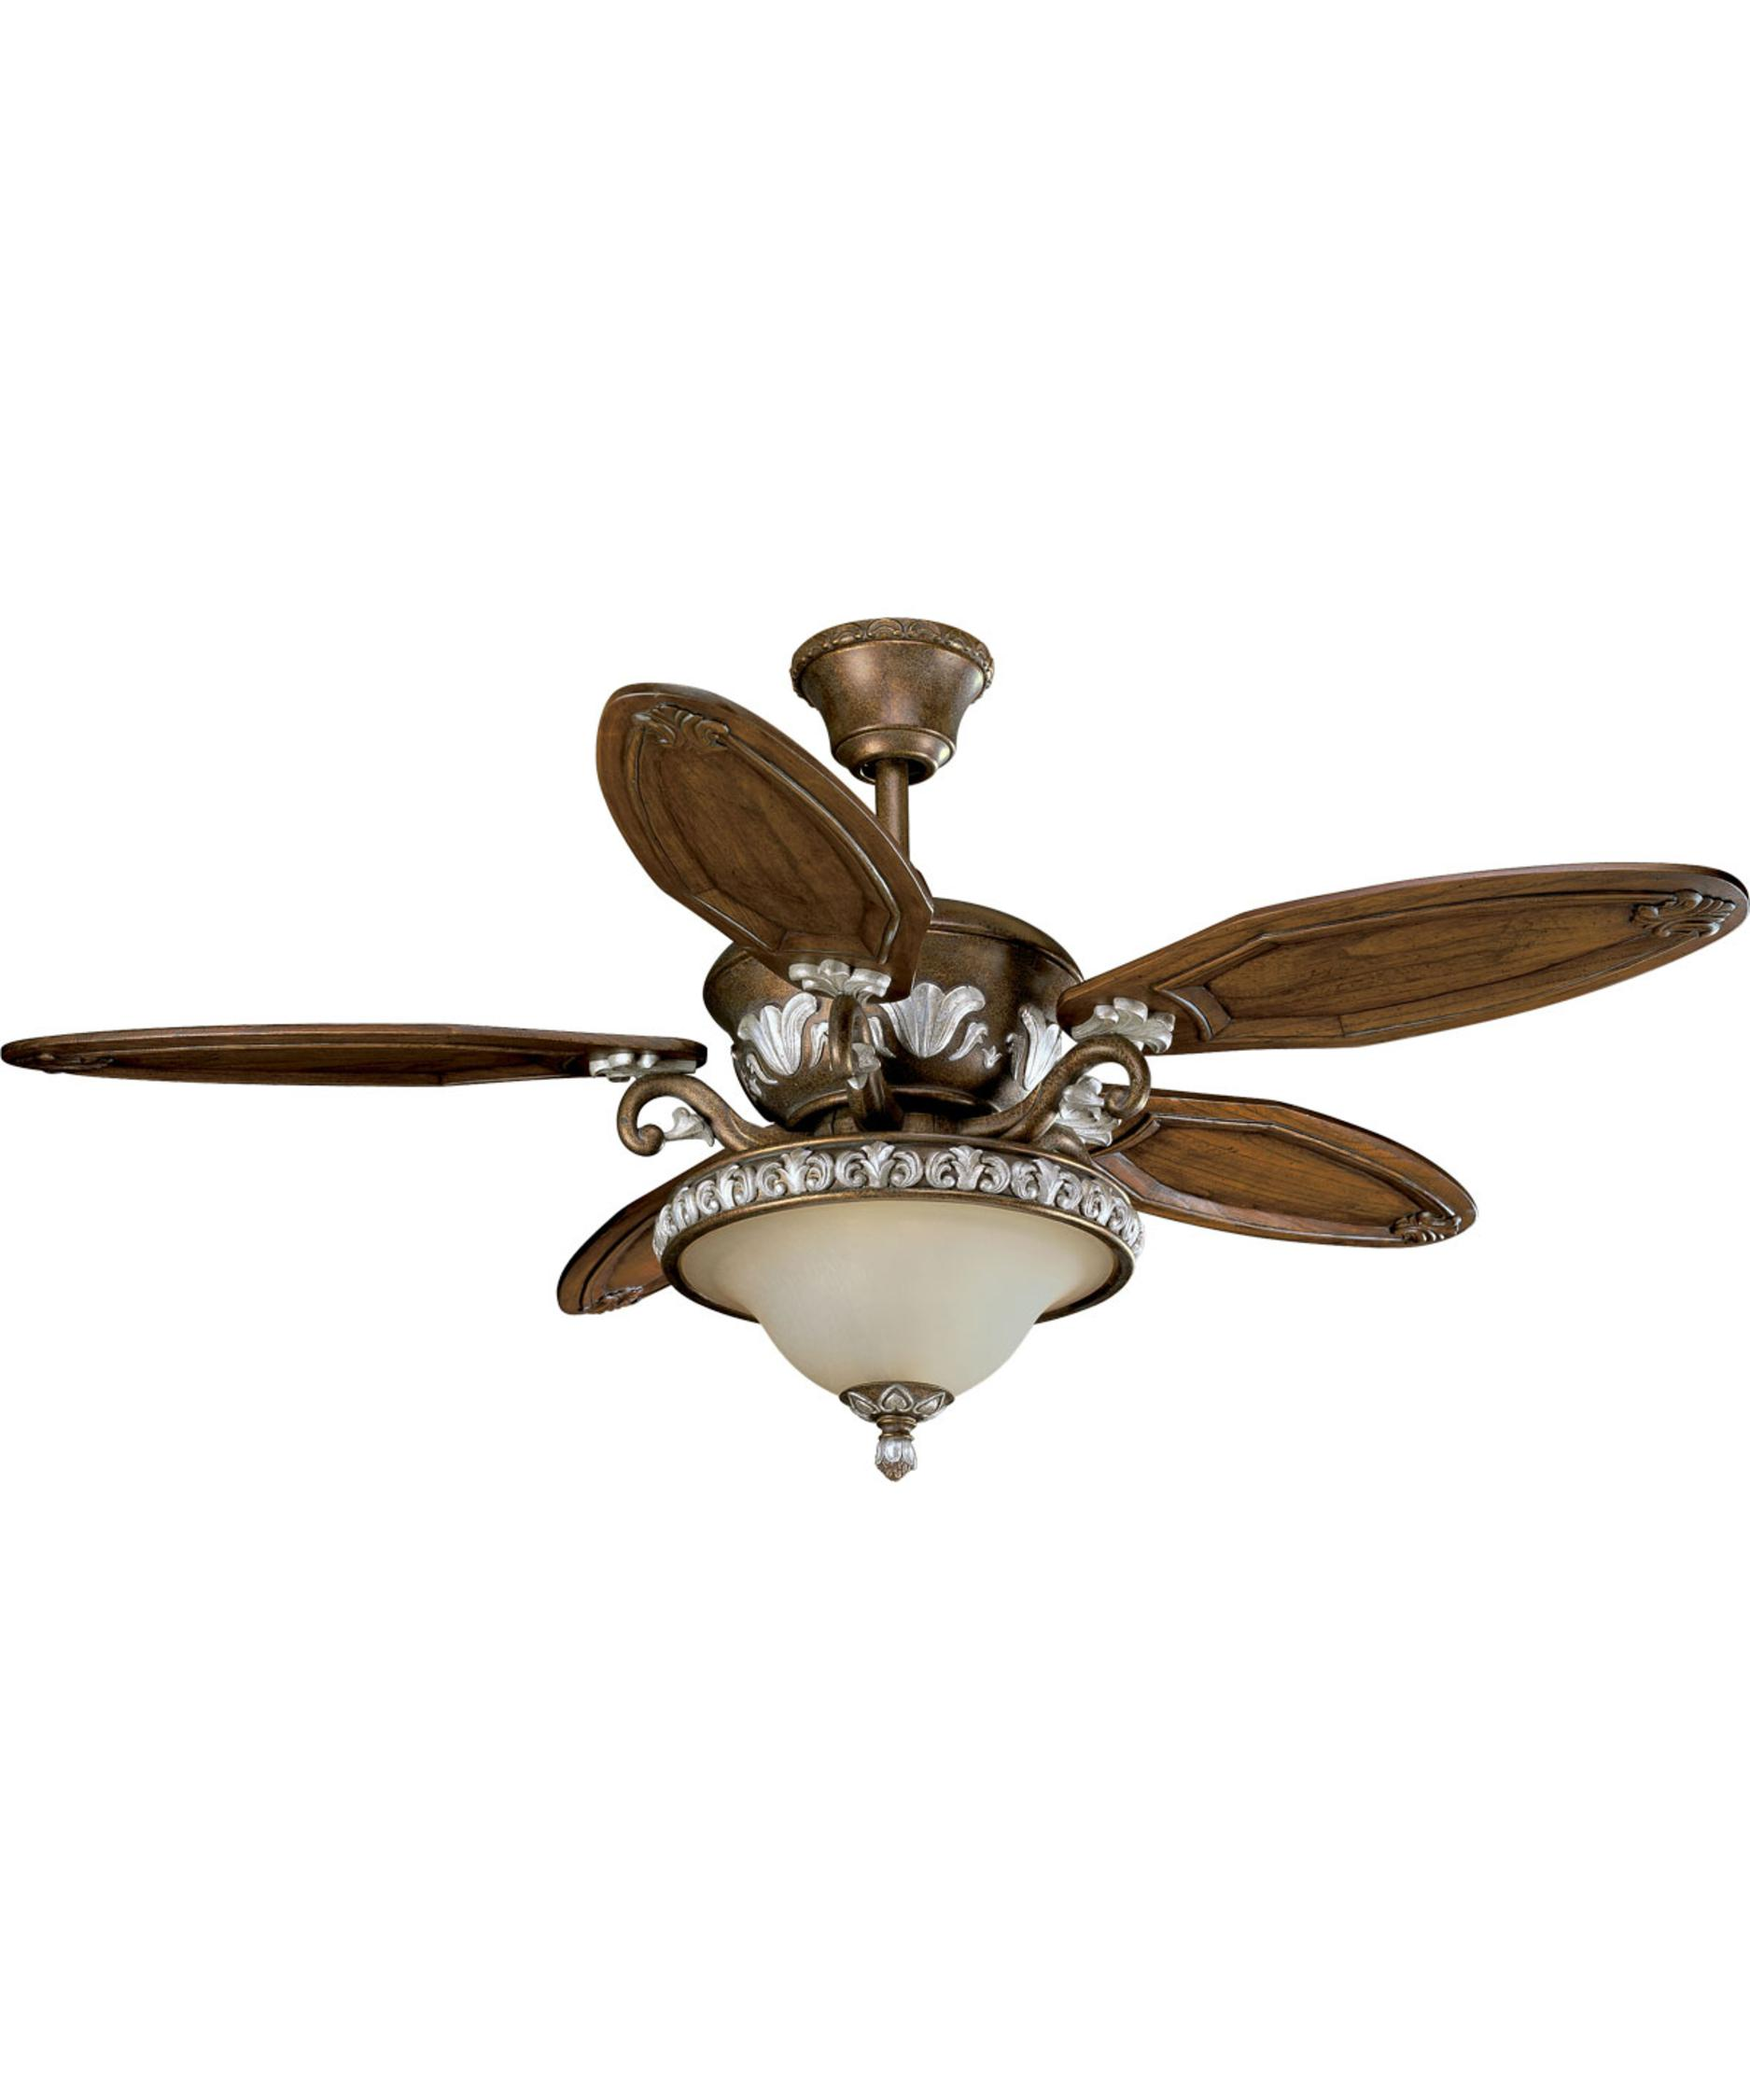 shown in tuscany crackle finish and etched antique seeded glass - Outdoor Ceiling Fans With Lights